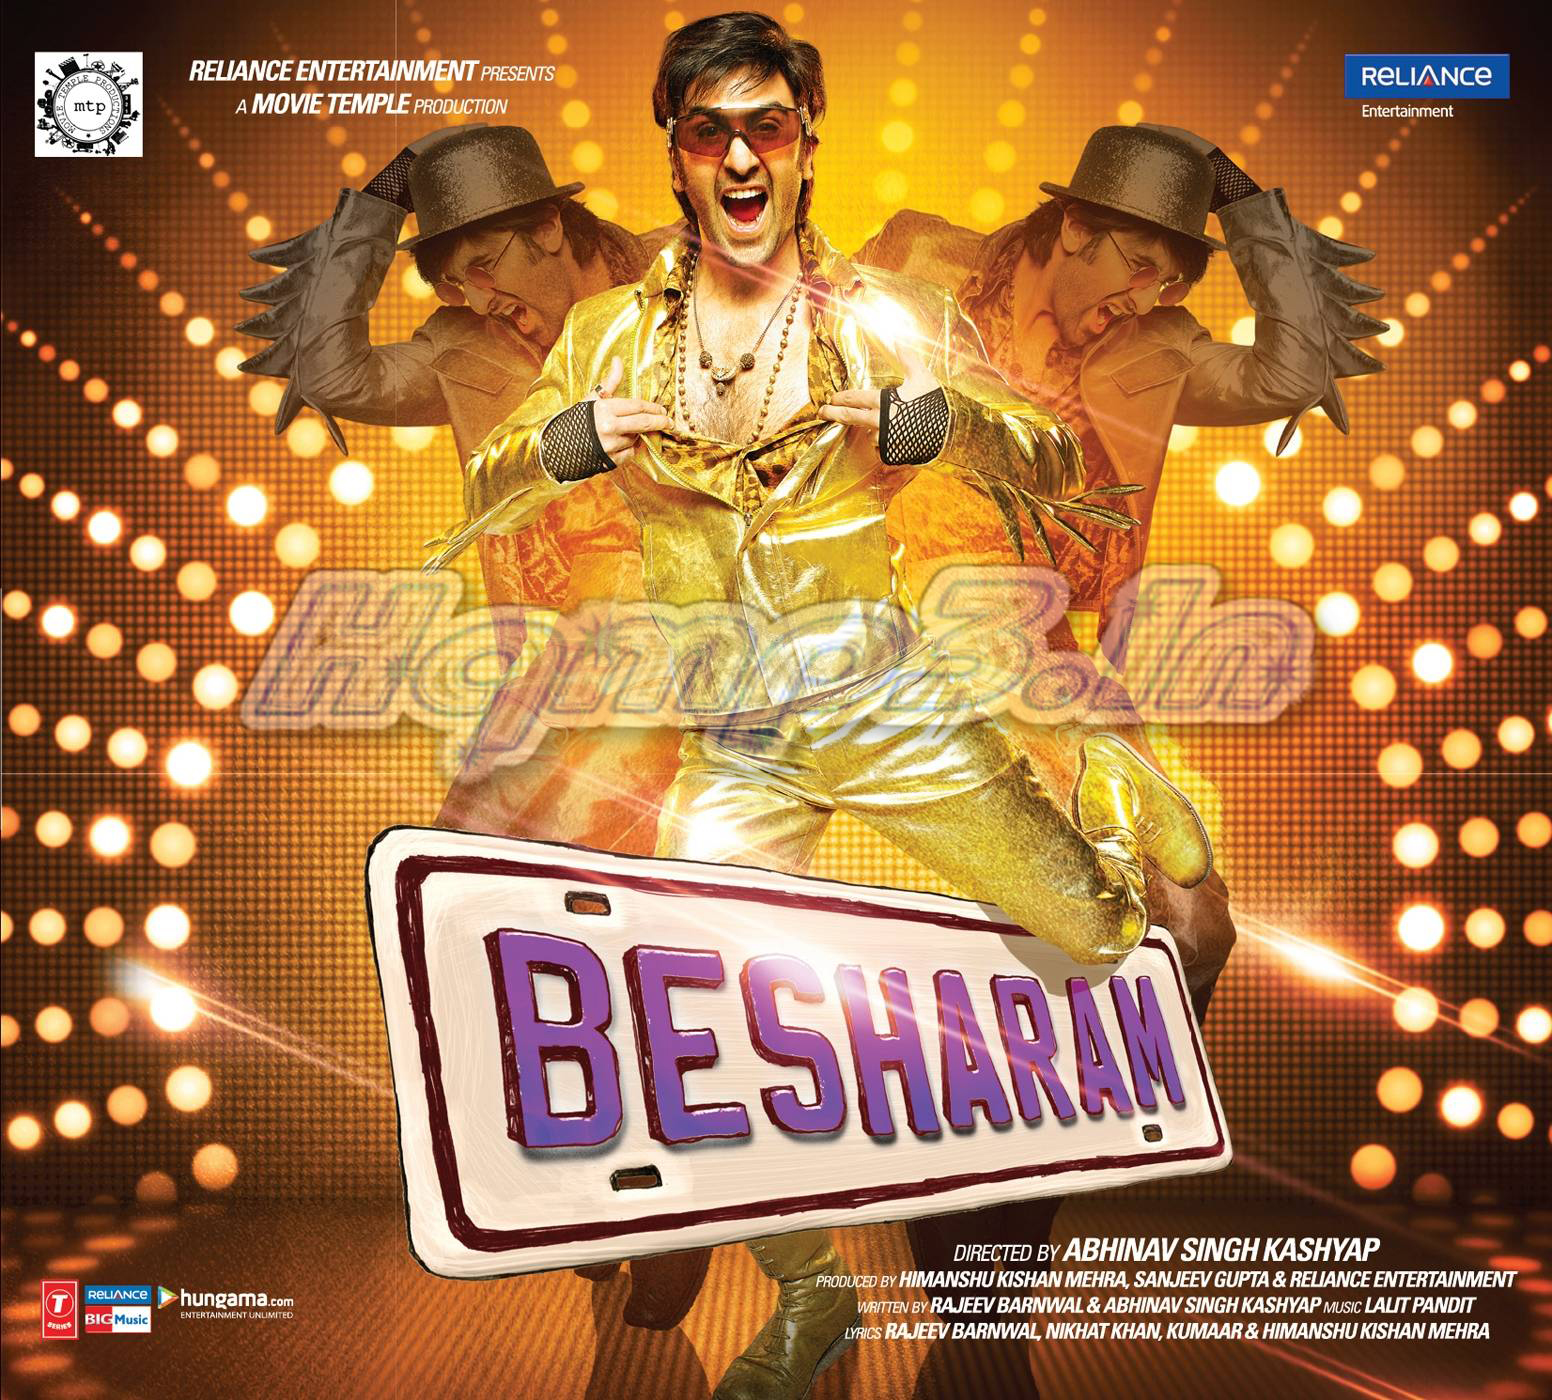 Im Roder Mp3 Song Download: BESHARAM Songs [2013] Hindi Mp3 Songs - Hqmp3.In